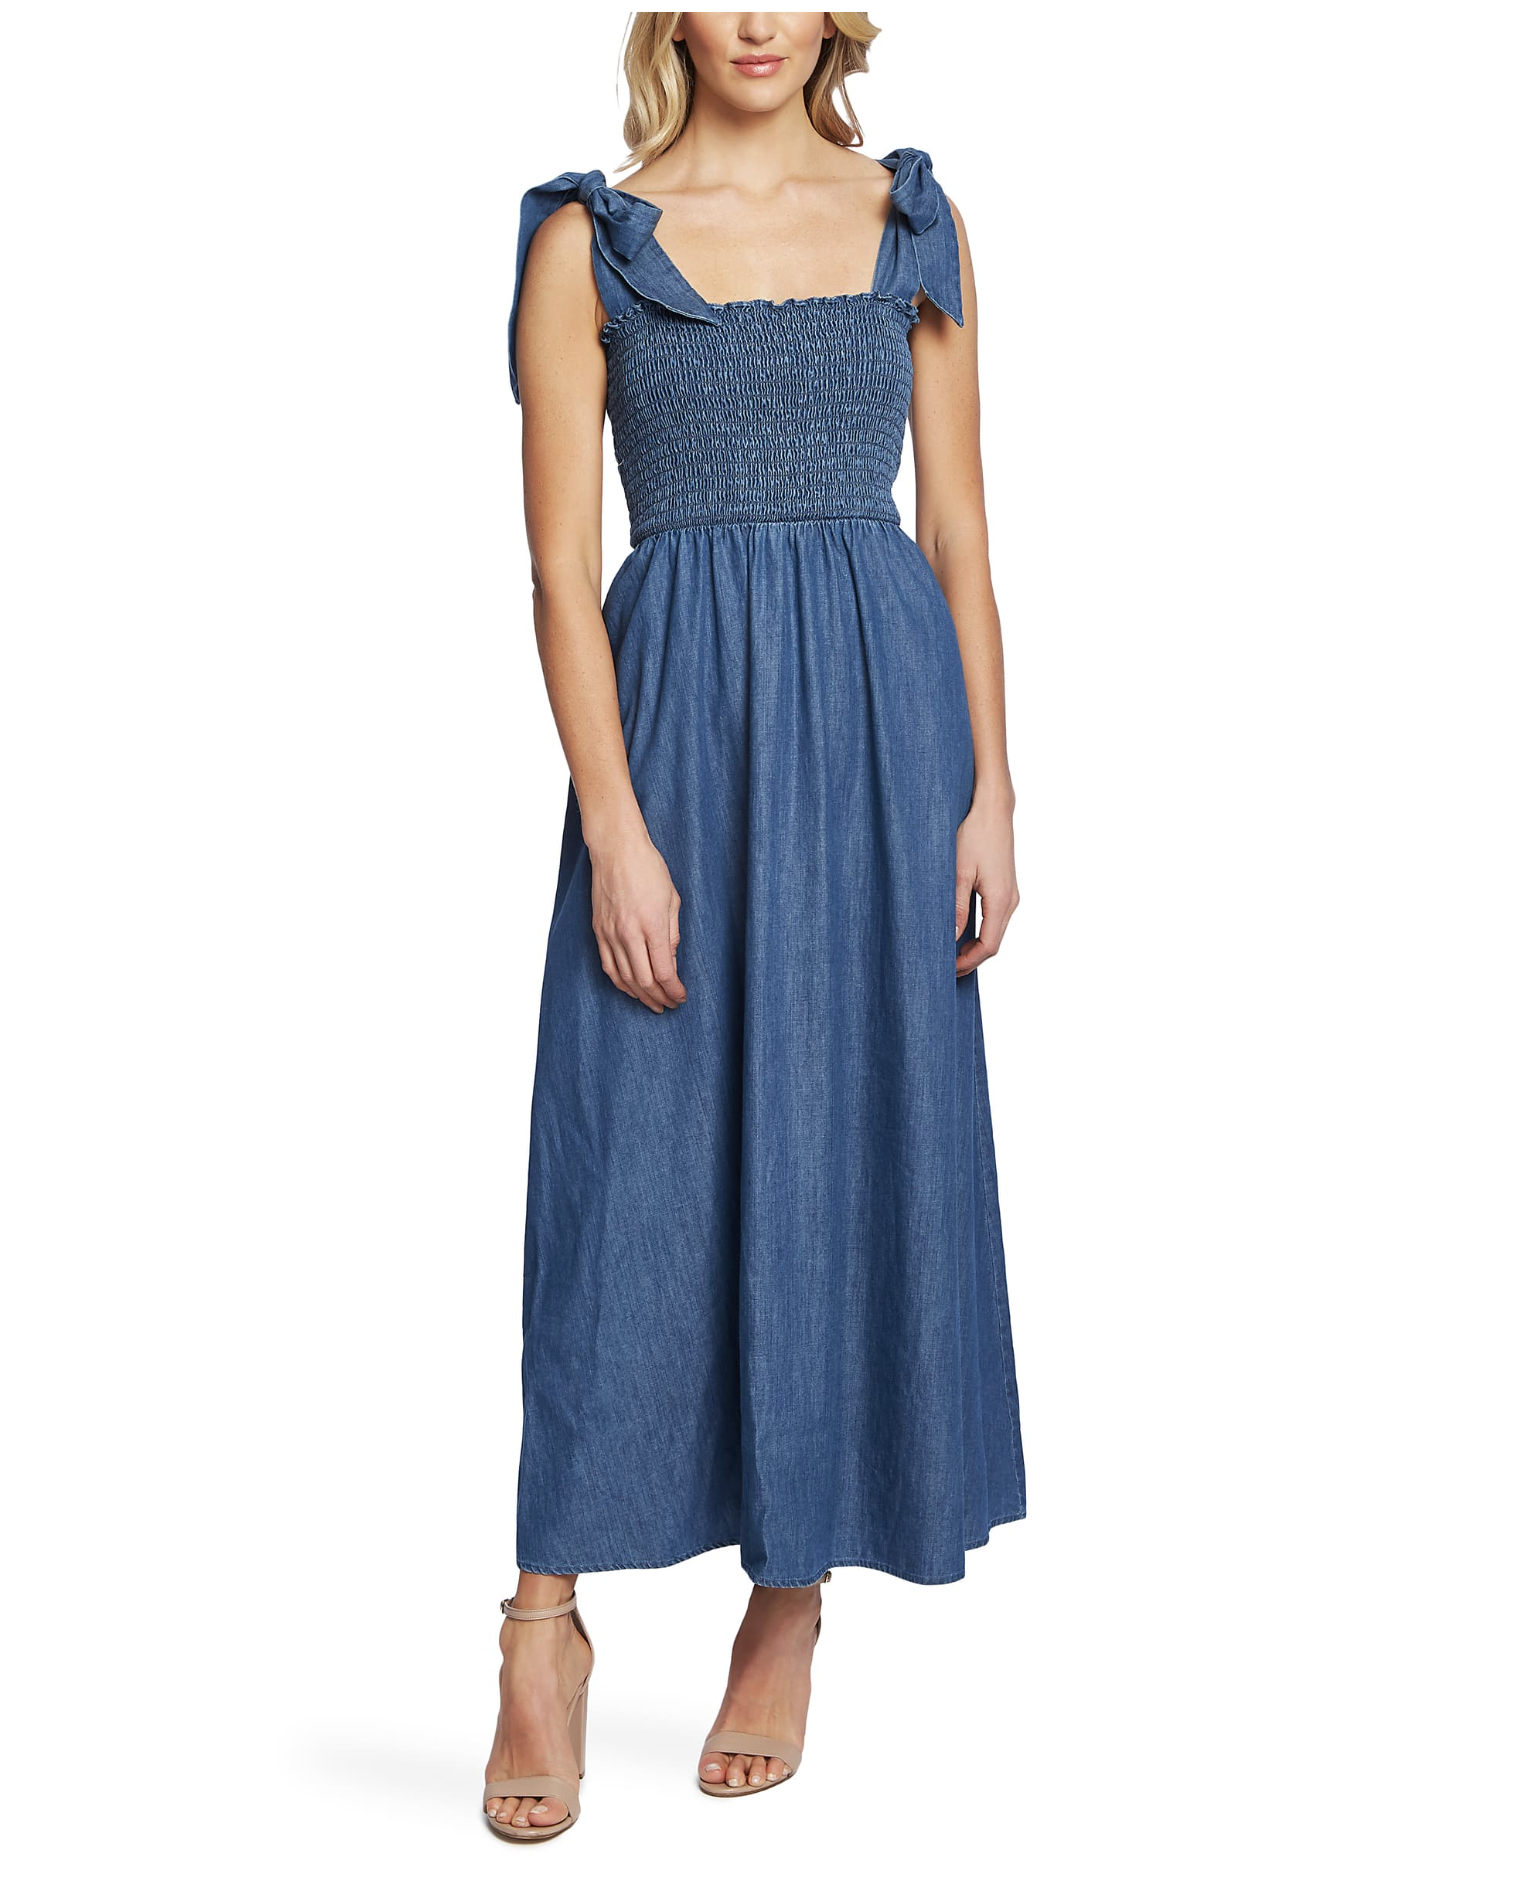 CeCe Tie Shoulder Smocked Denim Maxi Dress